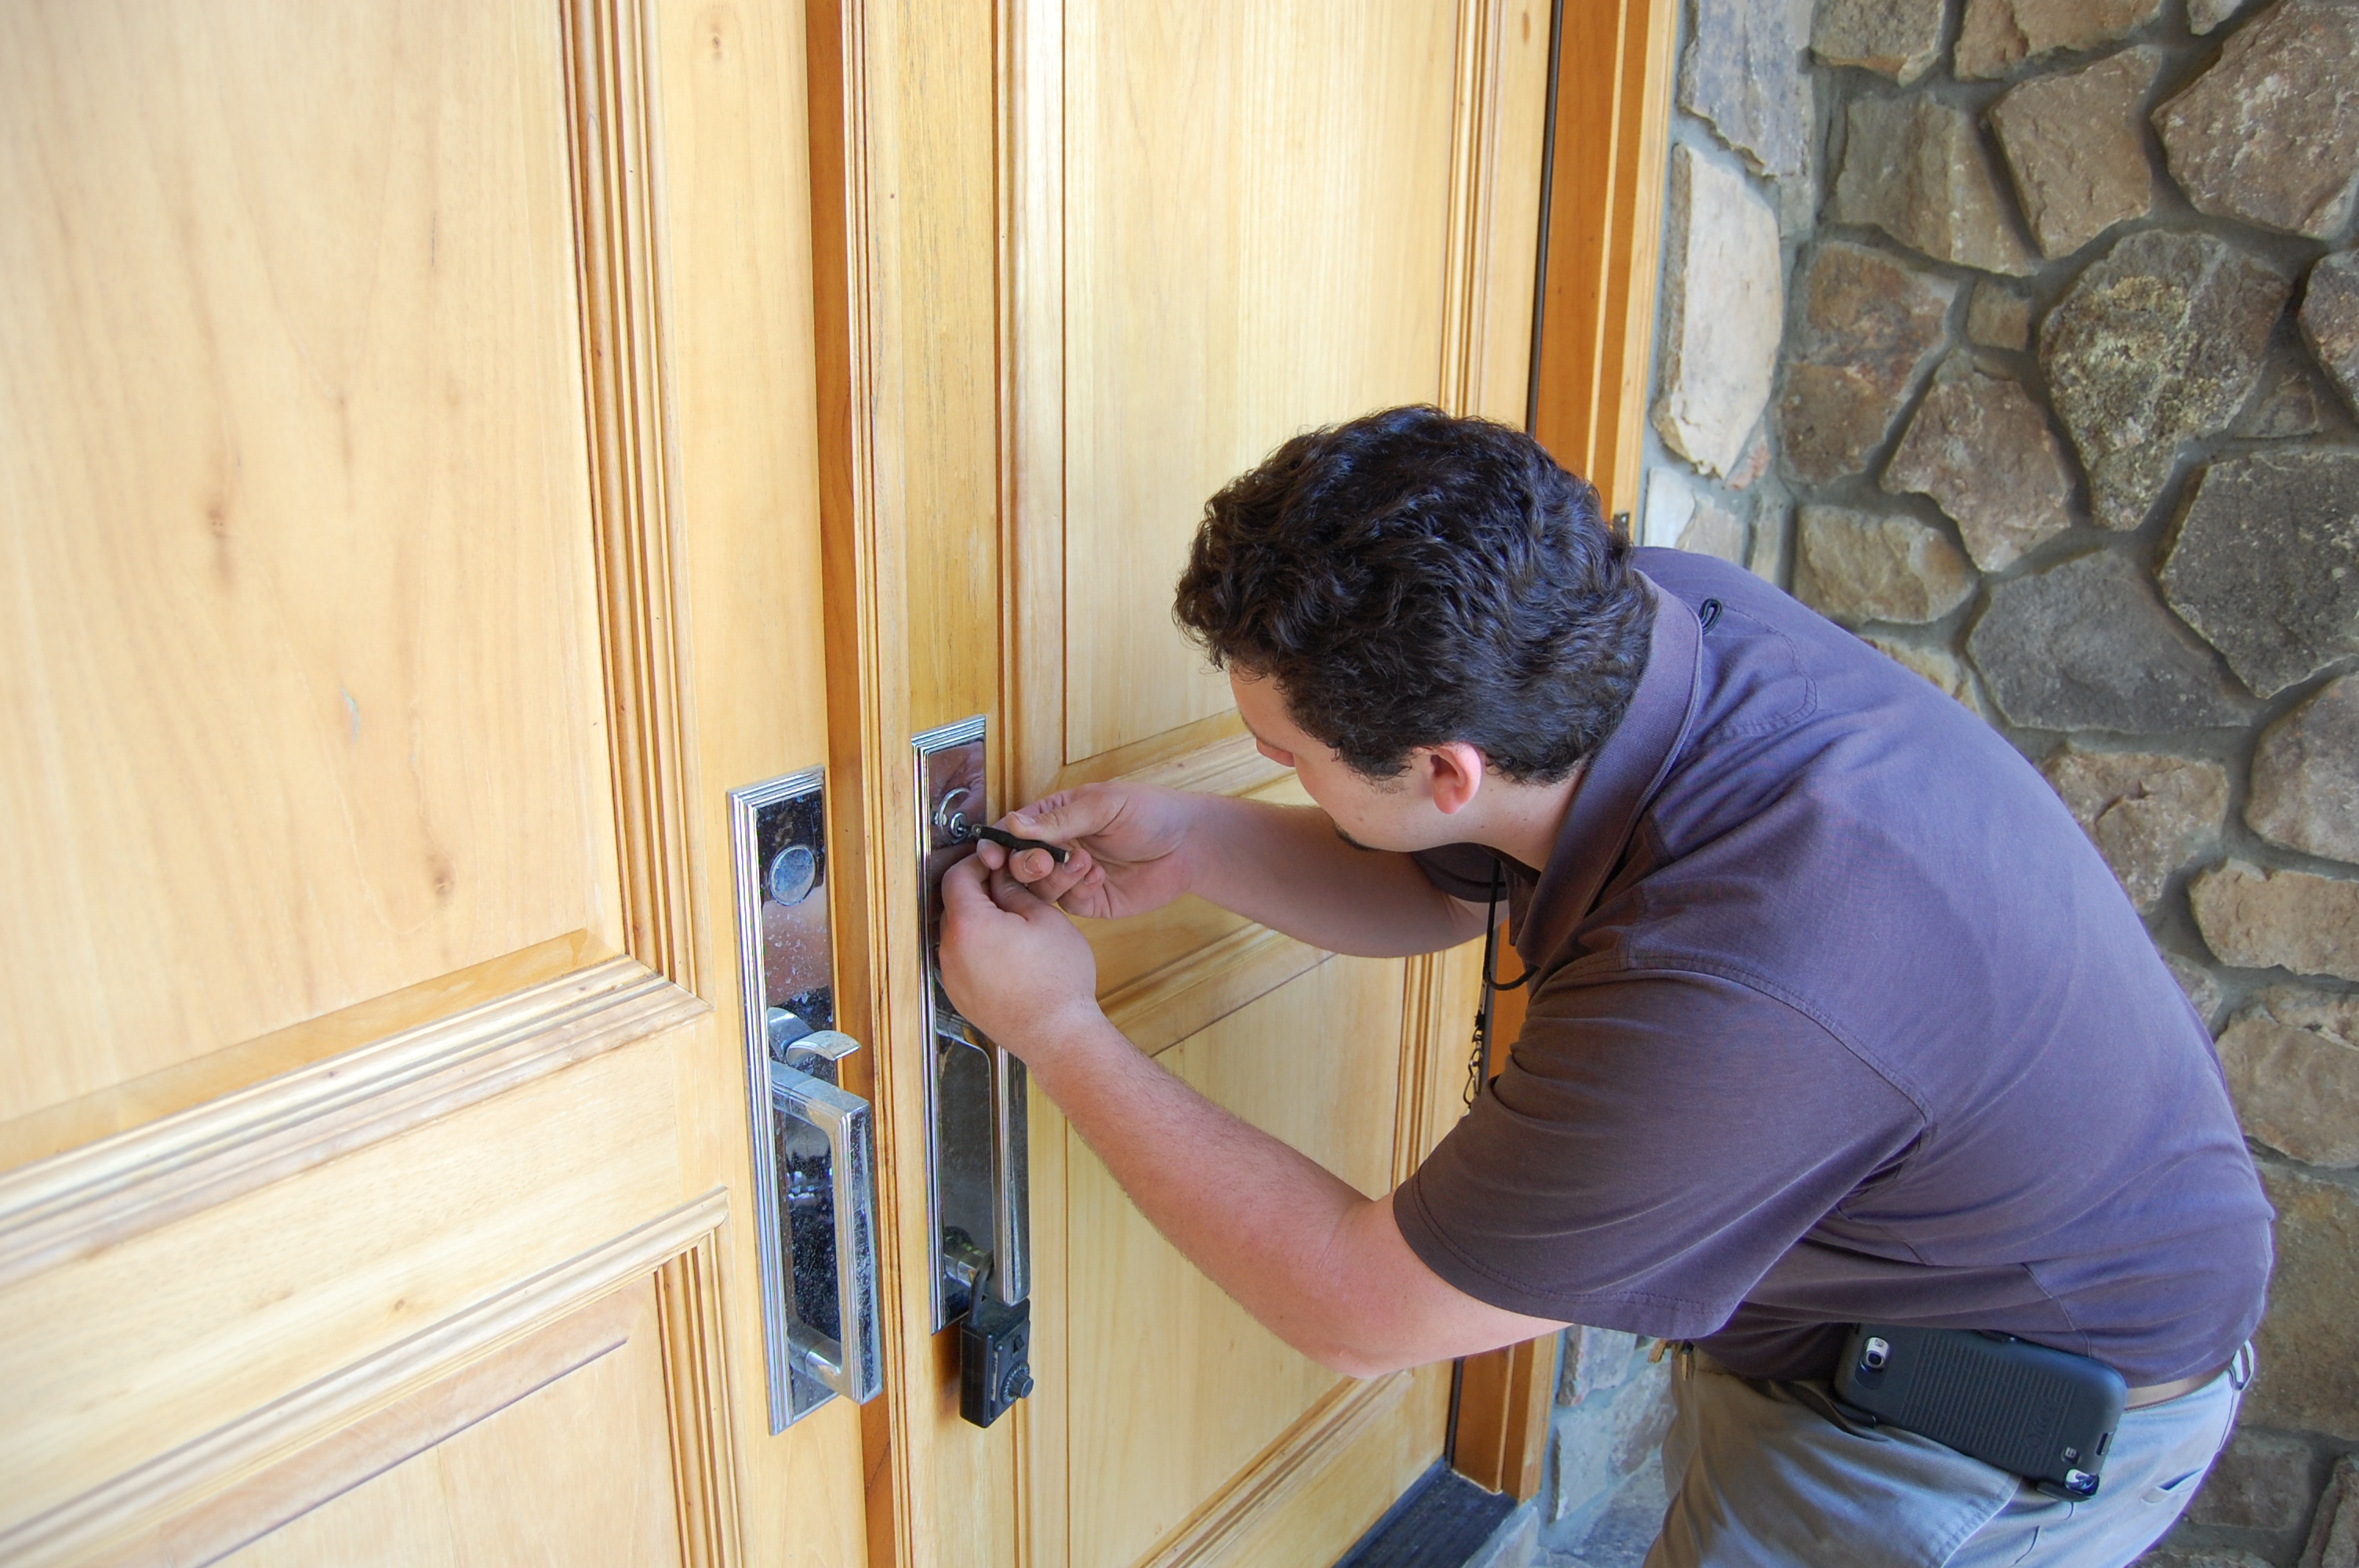 Locksmith Services - You Could Be Surprised at What Is Available